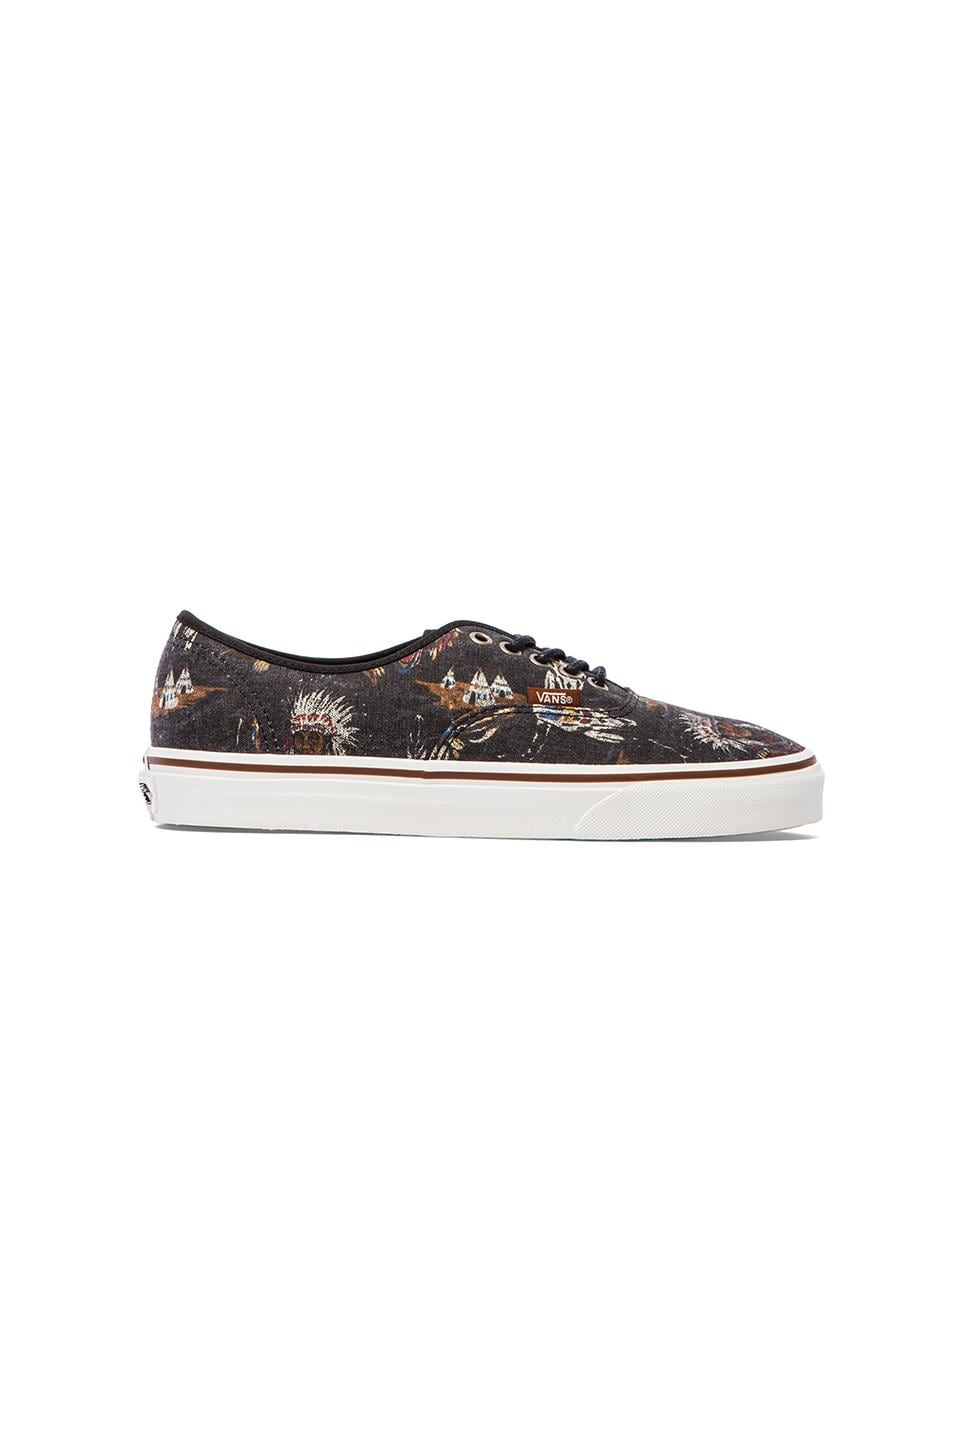 Vans Authentic Tribal Leaders in Black